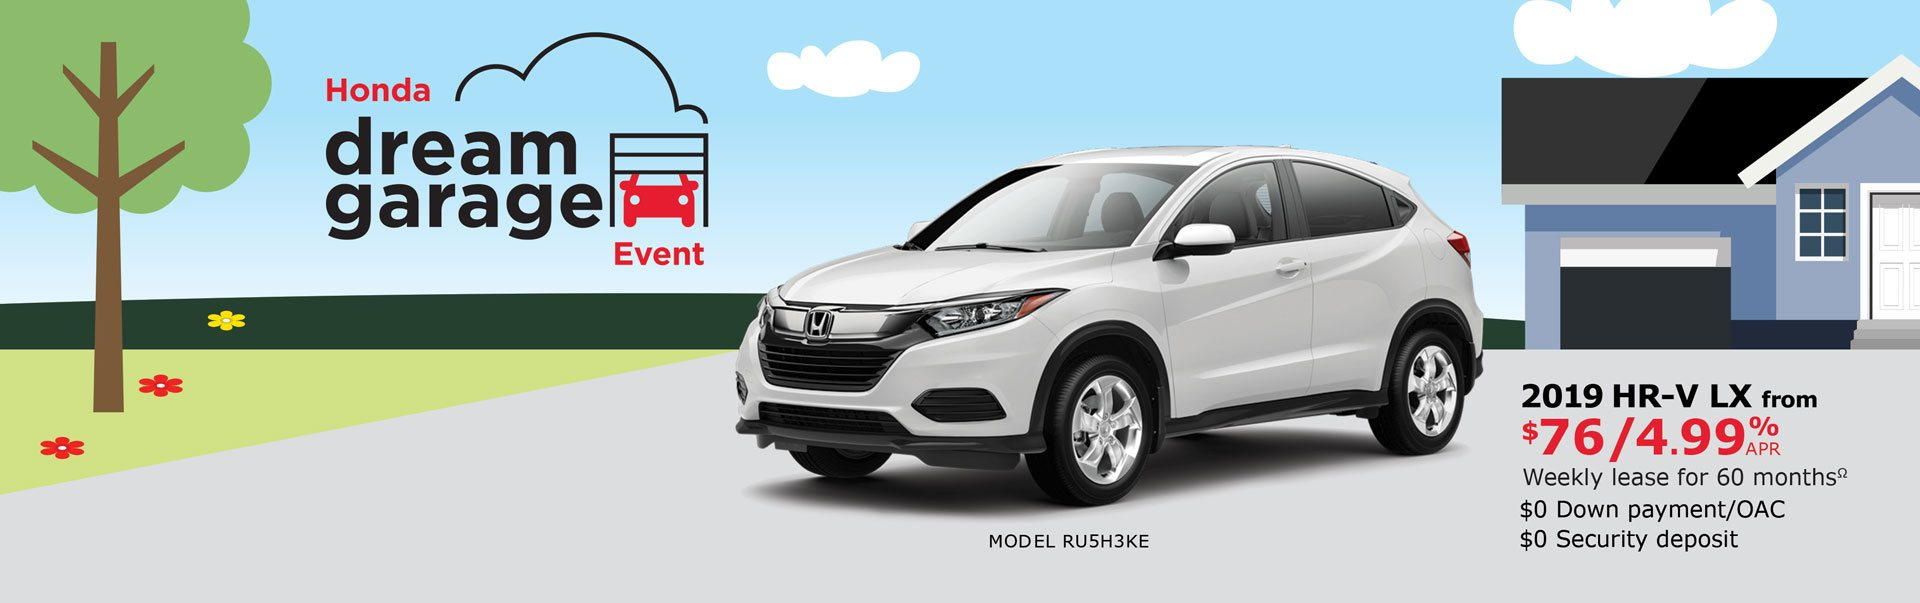 2019 HR-V from $76 Weekly